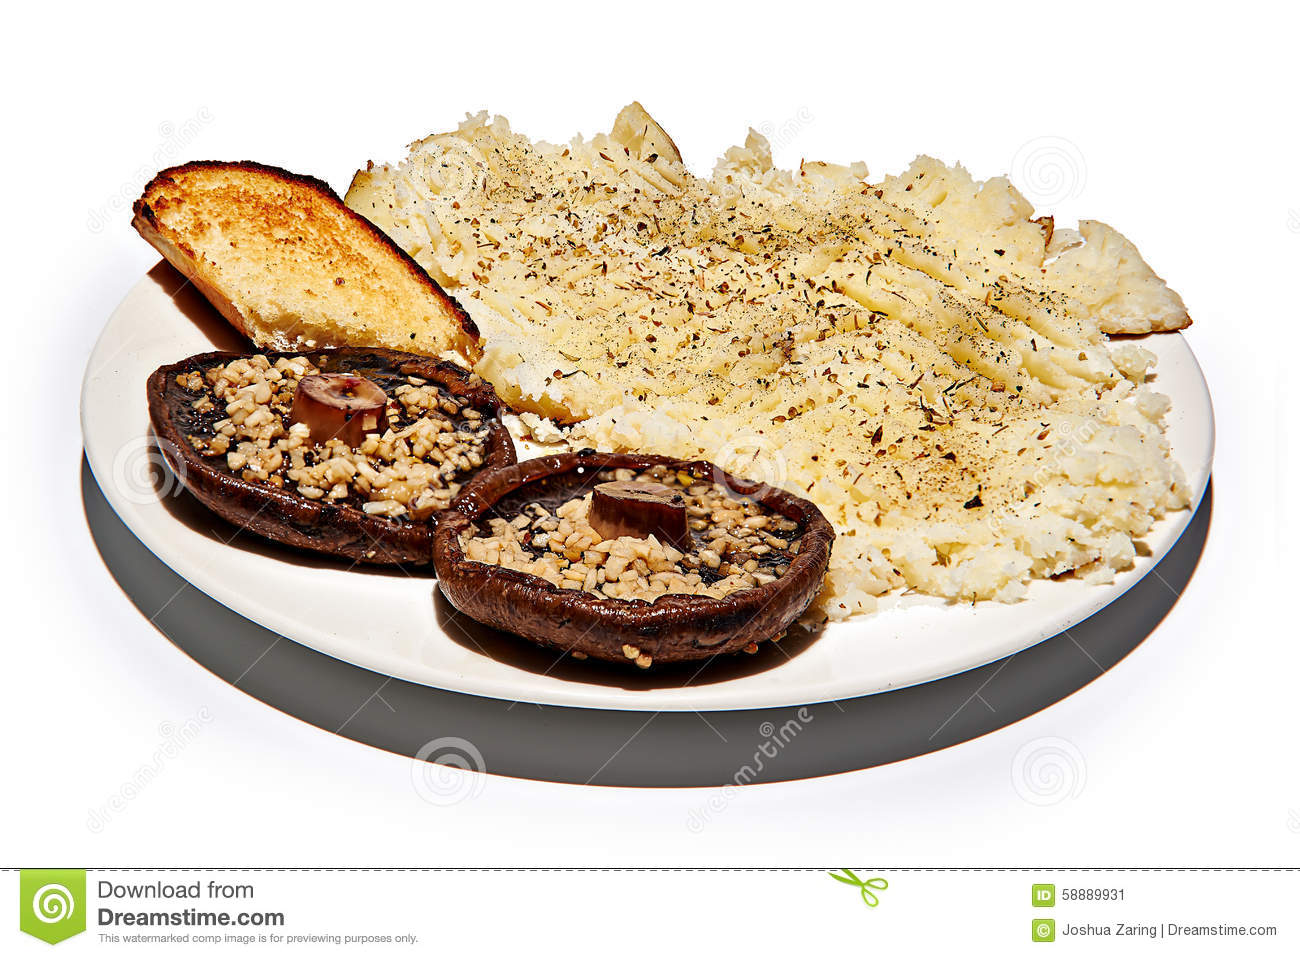 Cooked Portabella With Garlic And Baked Potato Stock Photo - Image ...